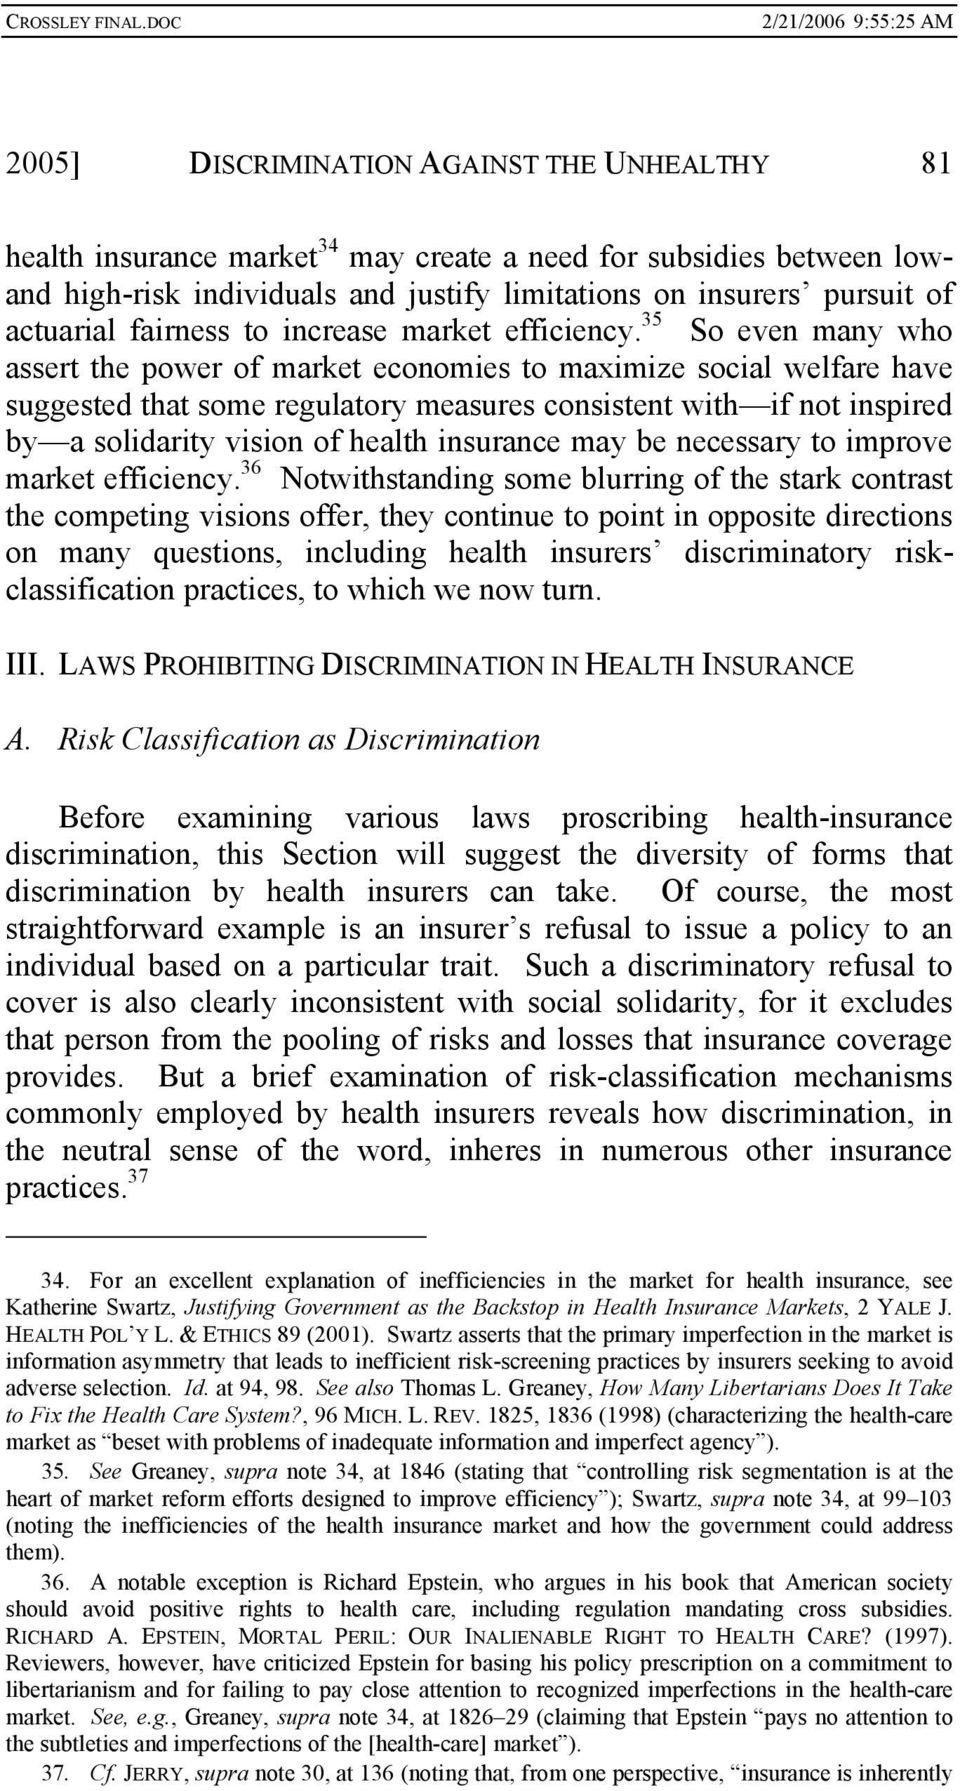 35 So even many who assert the power of market economies to maximize social welfare have suggested that some regulatory measures consistent with if not inspired by a solidarity vision of health